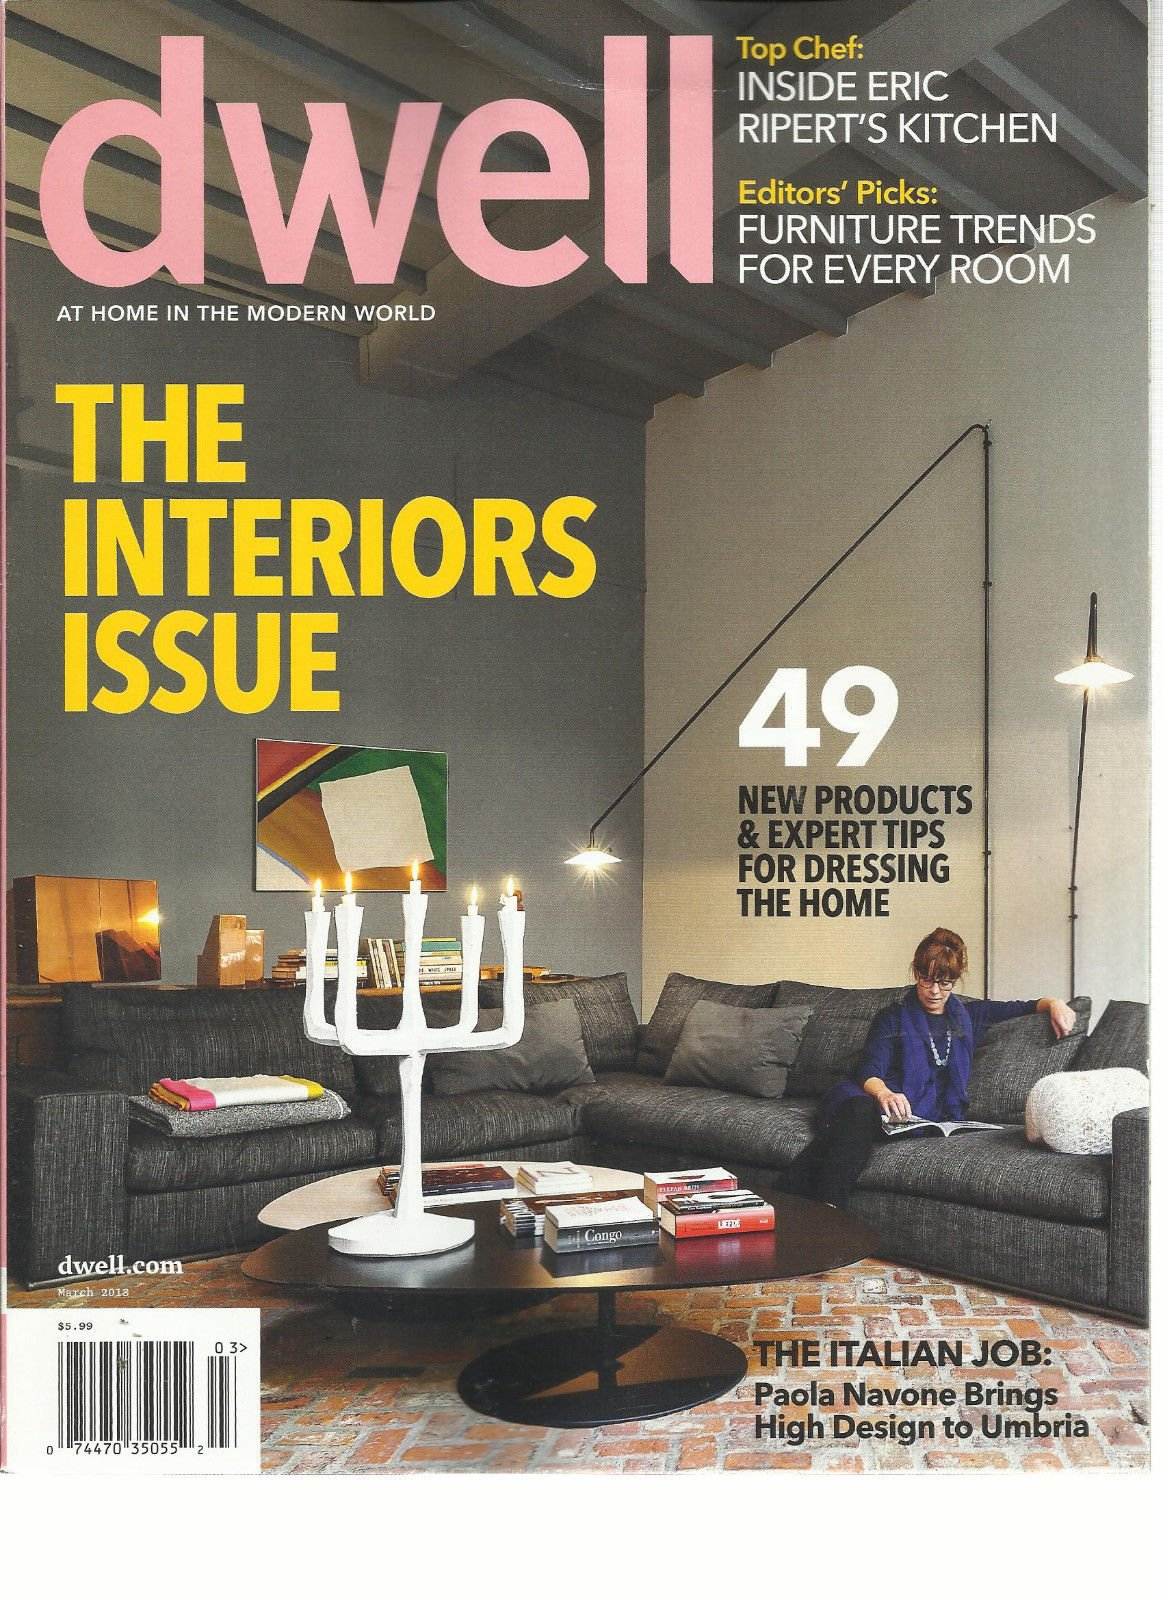 DWELL, MARCH, 2013 (AT HOME IN THE MODERN WORLD) THE INTERIORS ISSUE